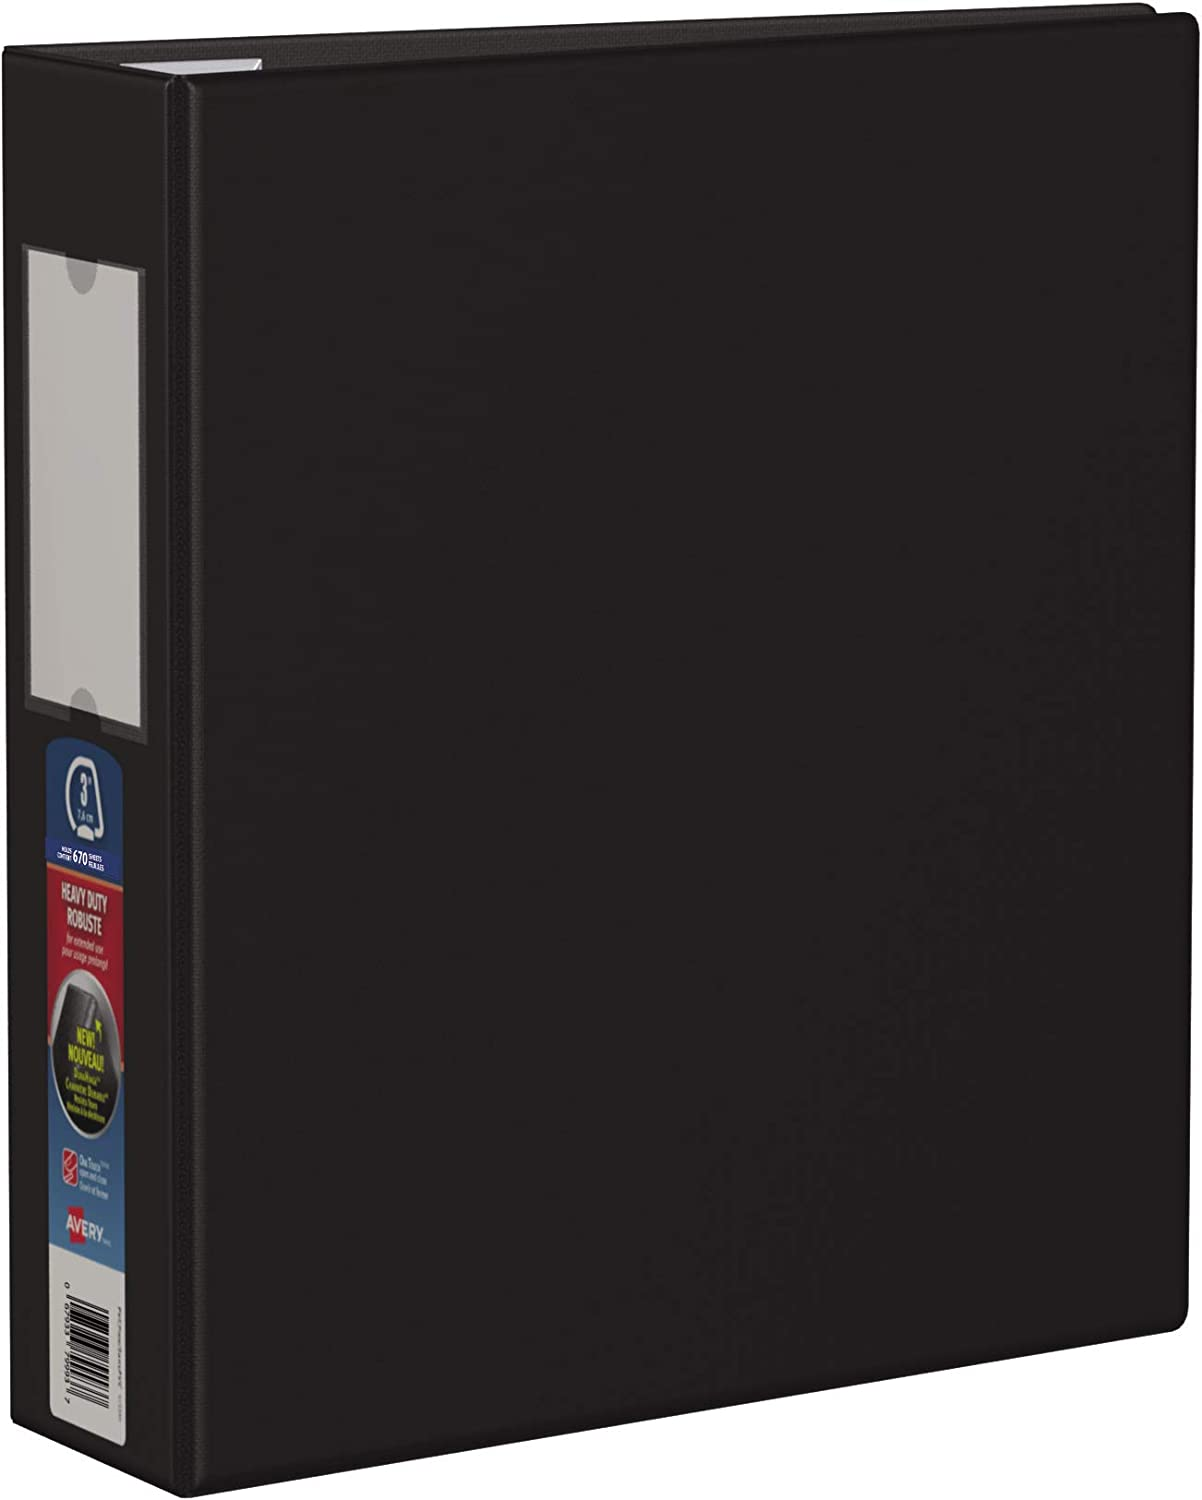 Black 79983 Avery Heavy-Duty Binder with 3-Inch One Touch EZD Ring